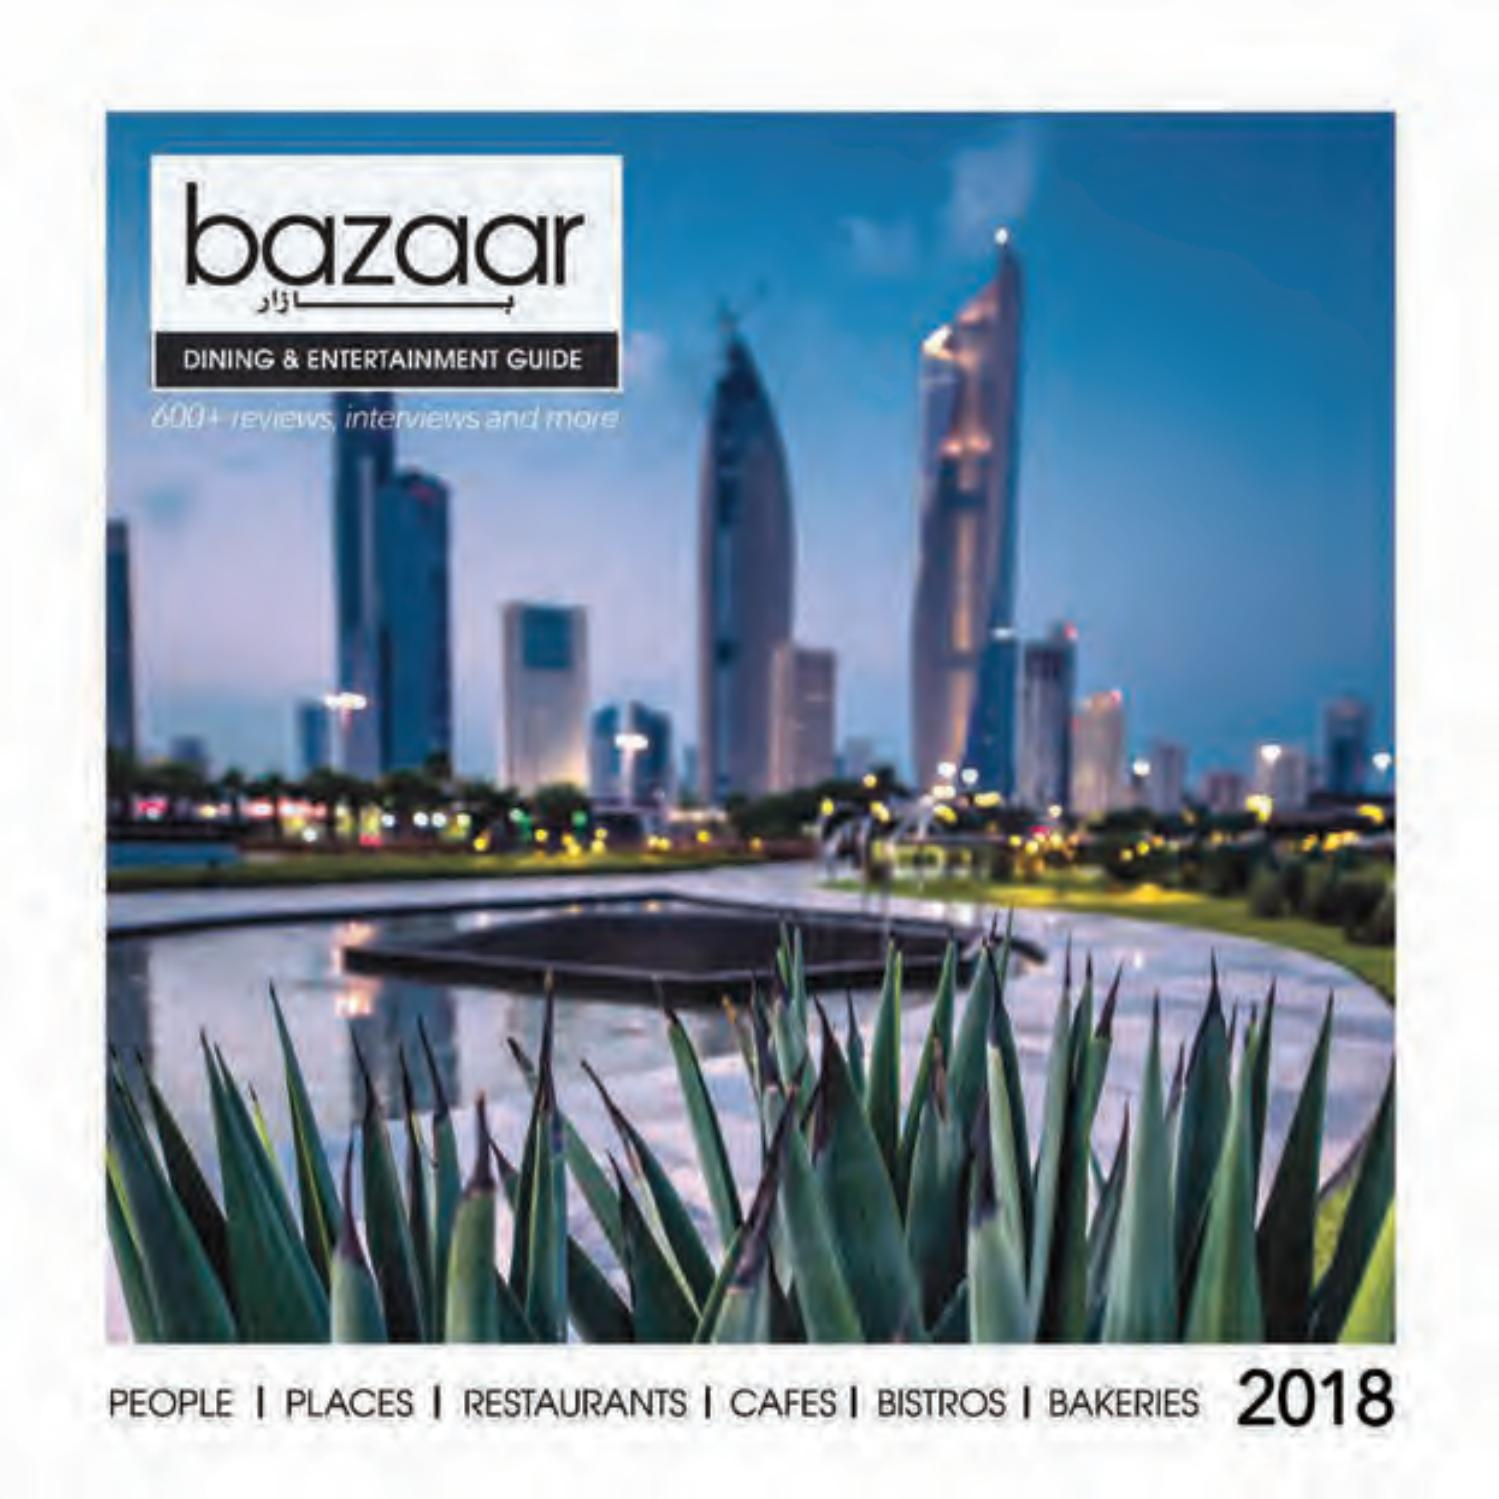 Cucina Restaurant Kuwait Menu Bazaar Dining Entertainment Guide 2018 By Bazaar Magazine